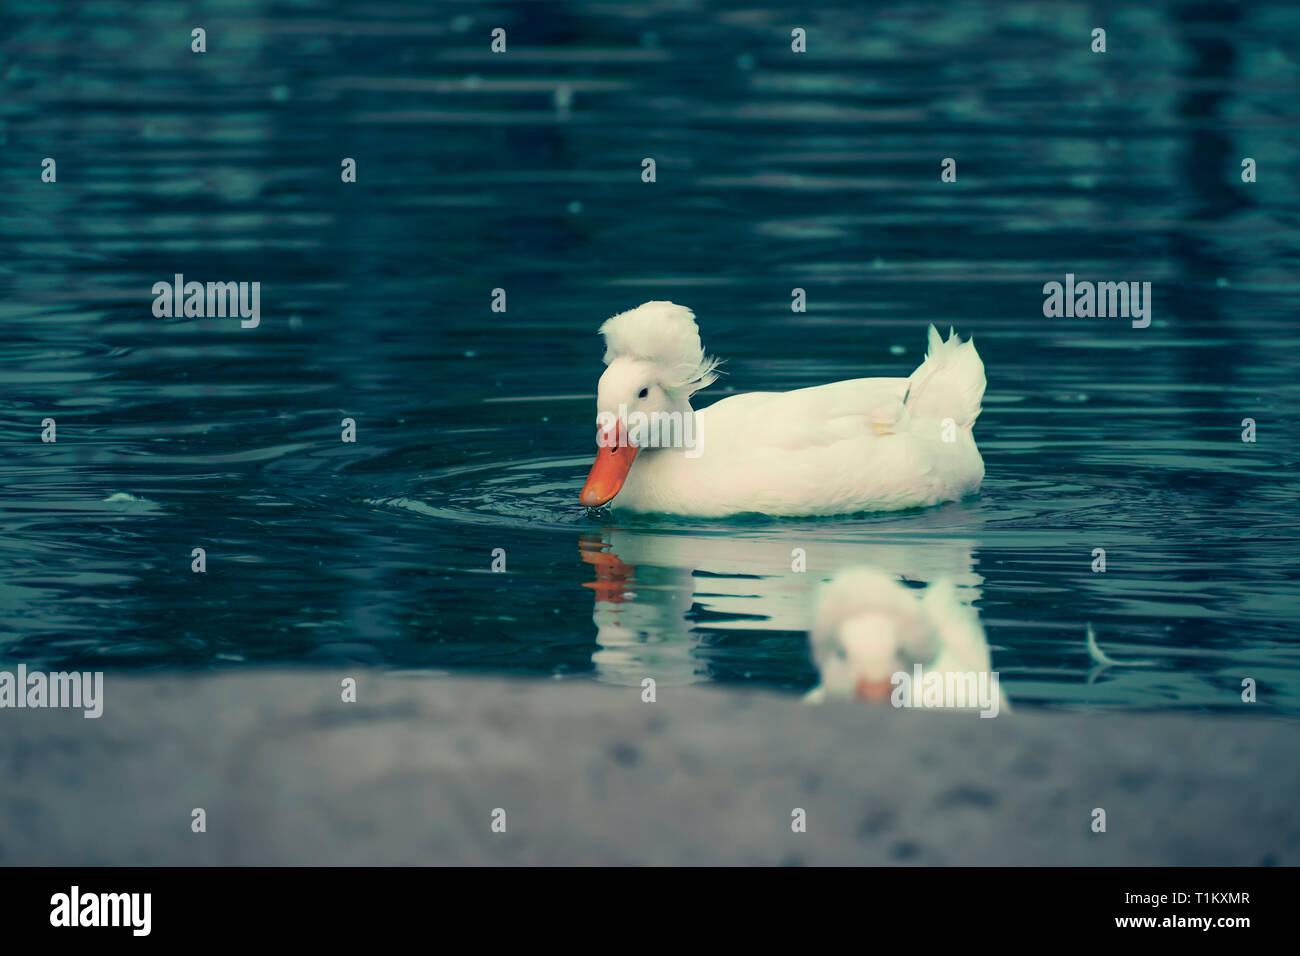 White duck swimming in the blue water of a lake - Stock Image